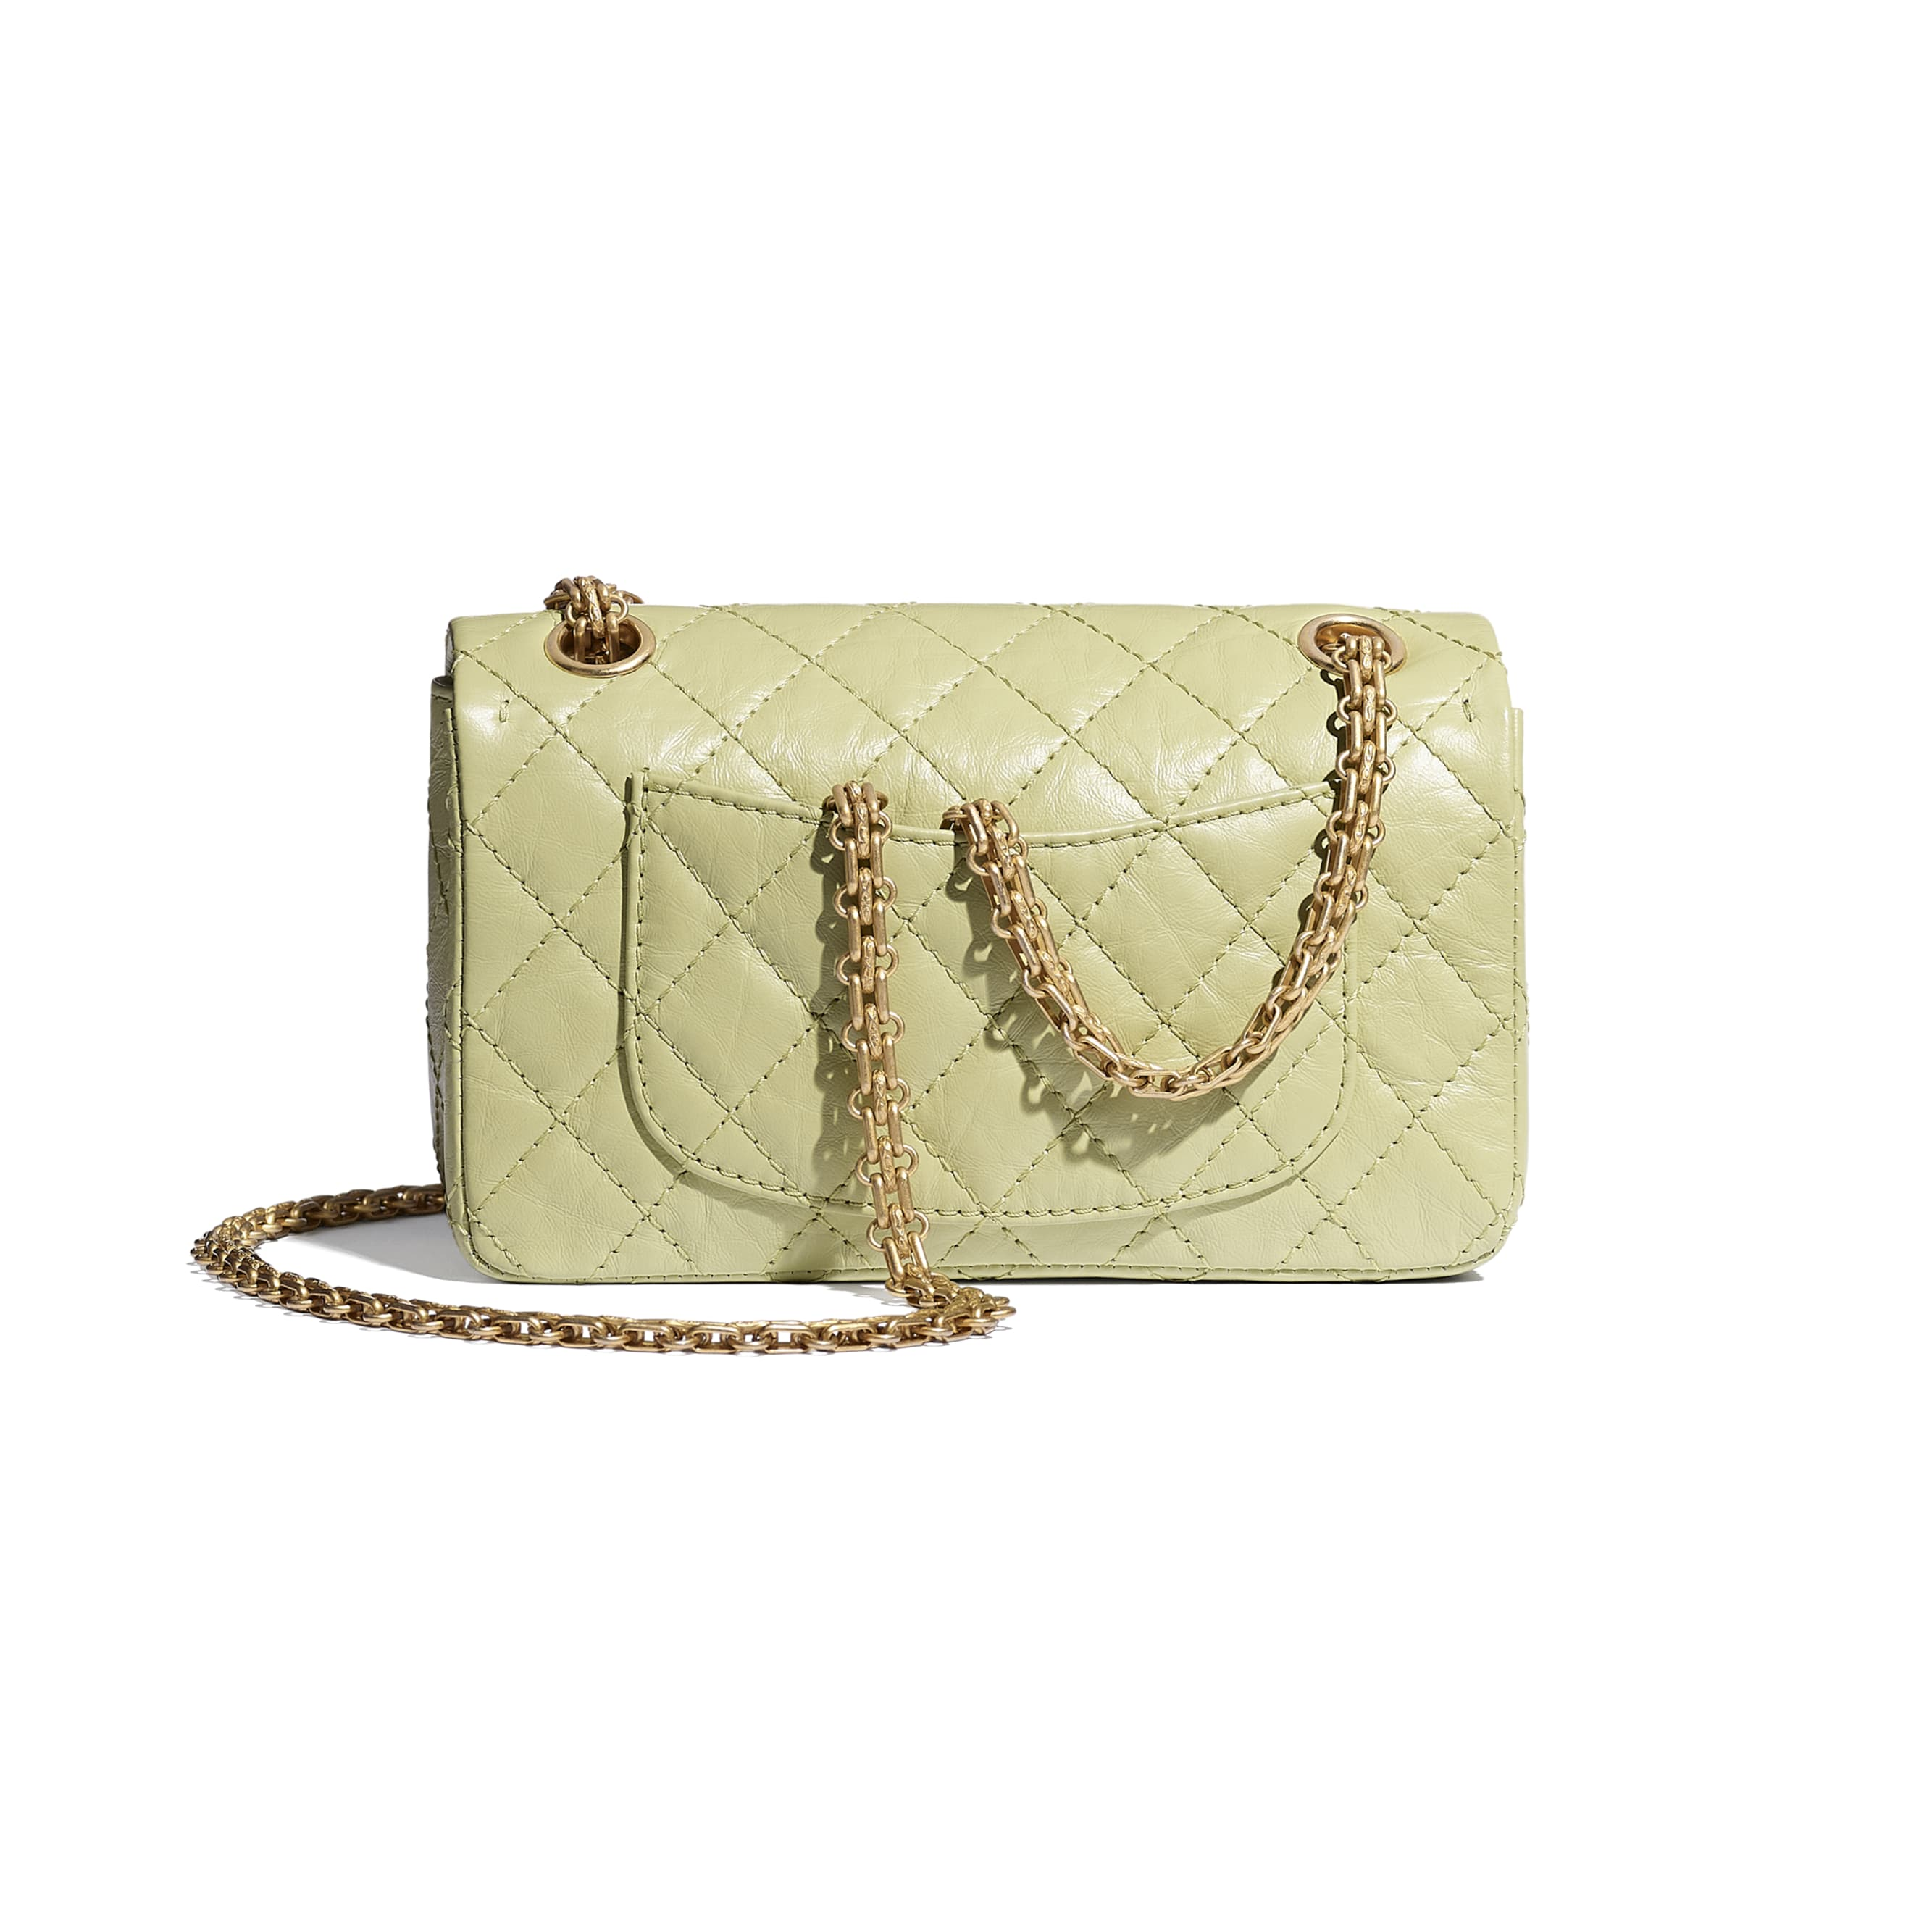 Mini 2.55 Handbag - Green - Aged Calfskin & Gold-Tone Metal - CHANEL - Alternative view - see standard sized version